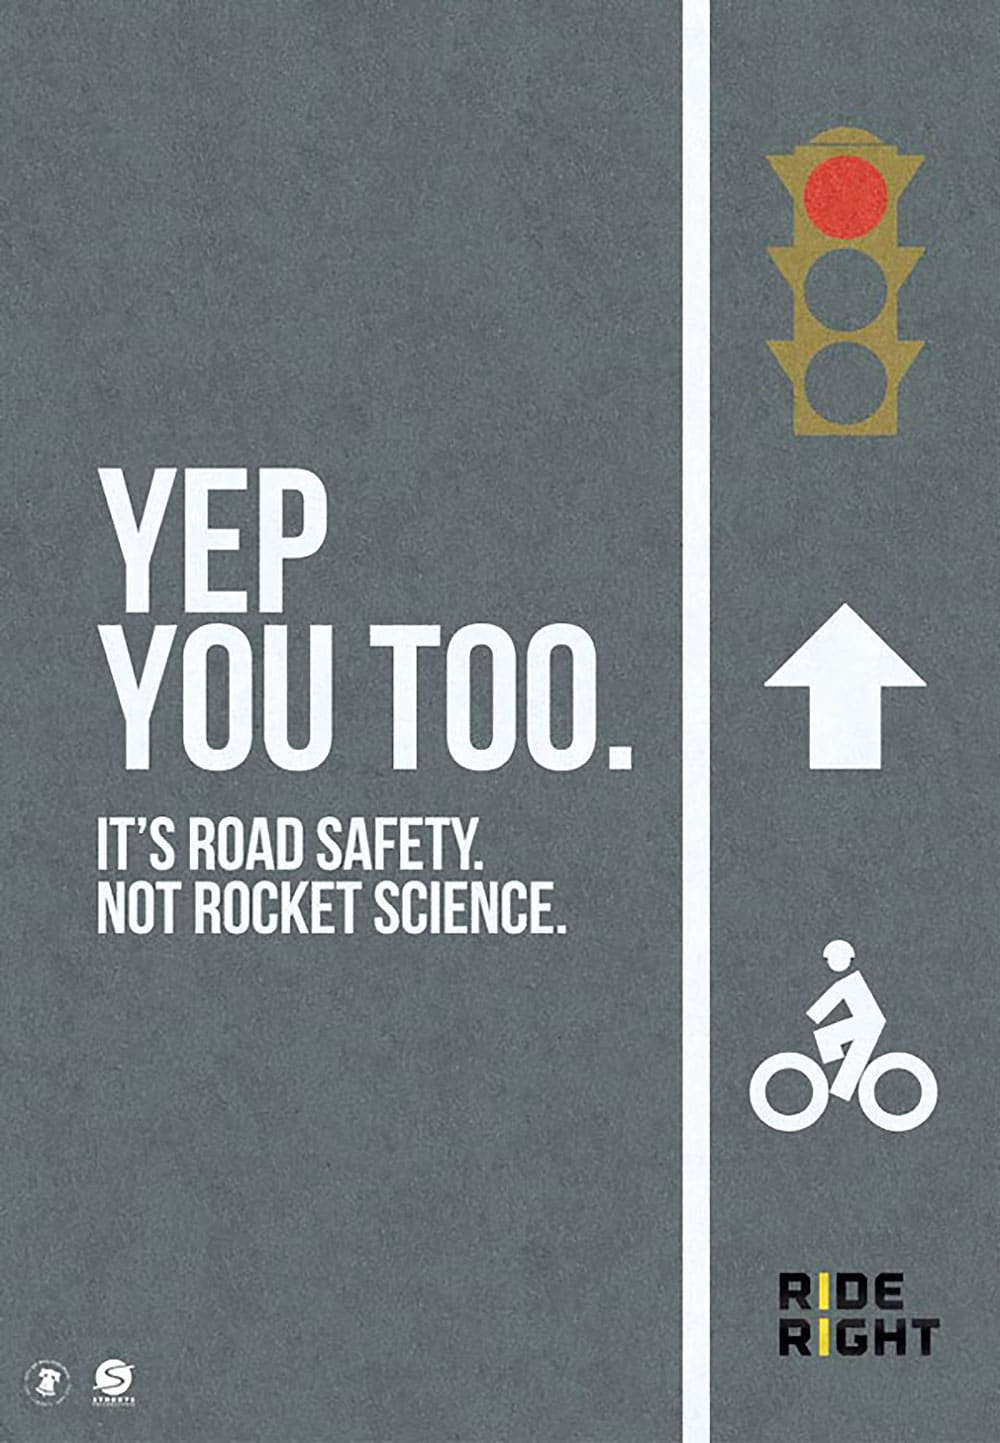 It's road safety. Not rocket science